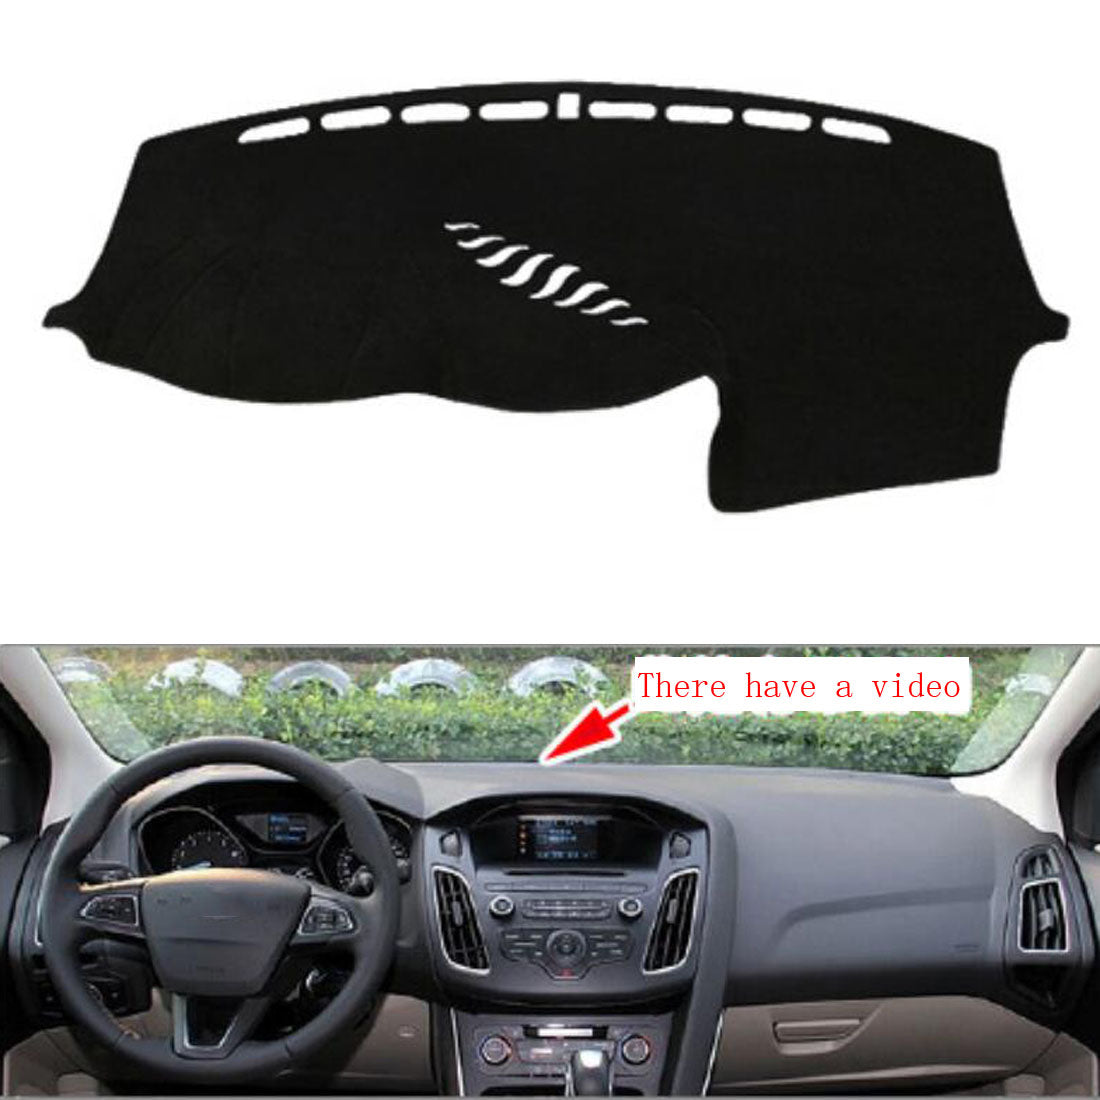 Dashboard Cover For Ford Focus 2012 - 2016,  - Any Car Accessories